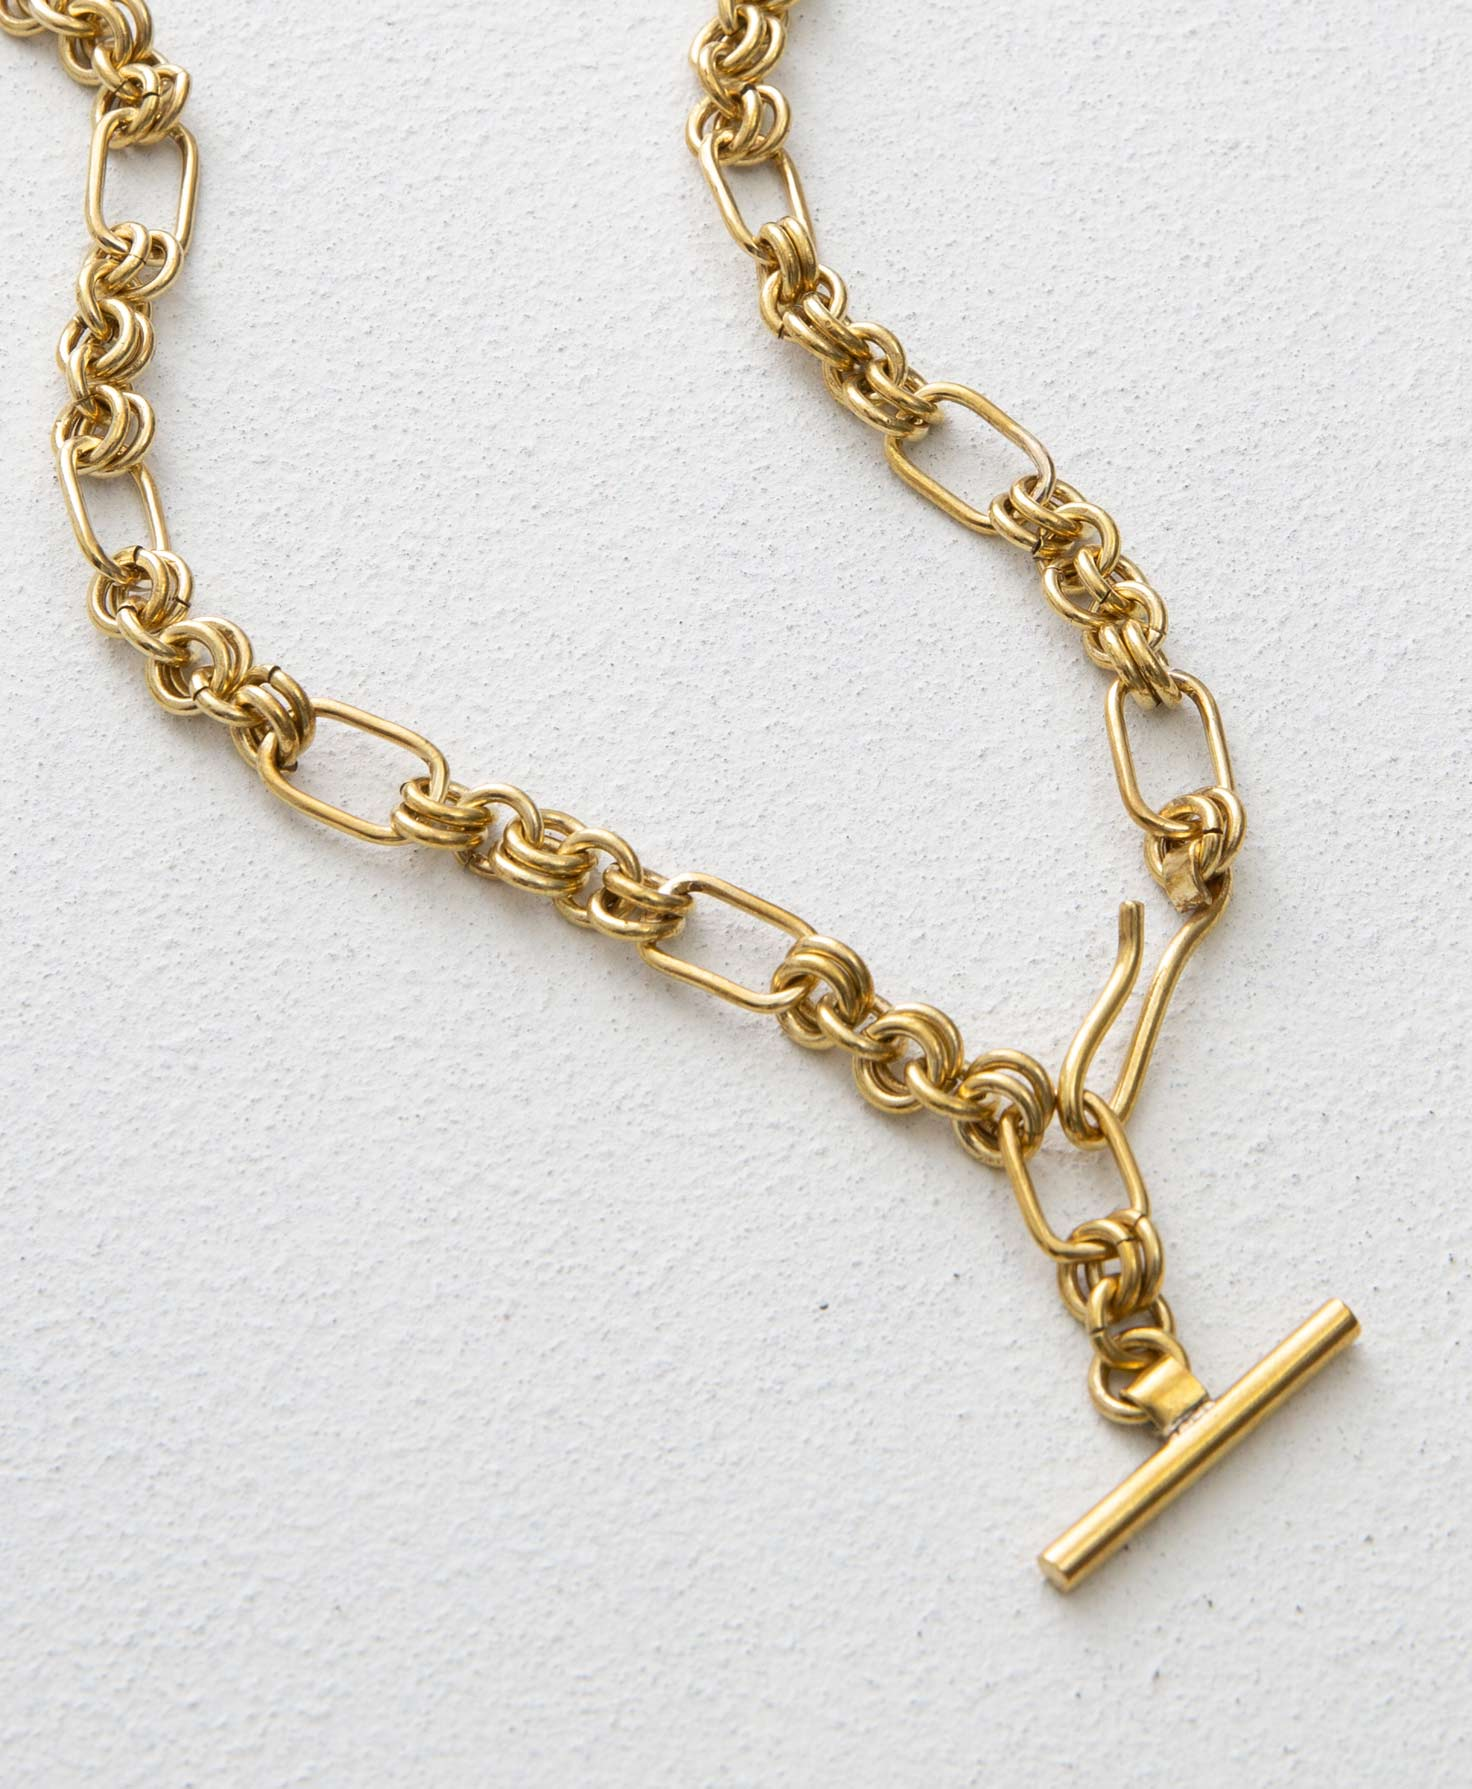 The Gold Rush Necklace lays on a white surface. It is made entirely of brass and features a chunky chain. The links of the chain alternate between circular links and bigger rectangular links. At one end of the chain is a brass hook that can be used to secure the necklace on any of the links. At the other end is a decorative brass bar.